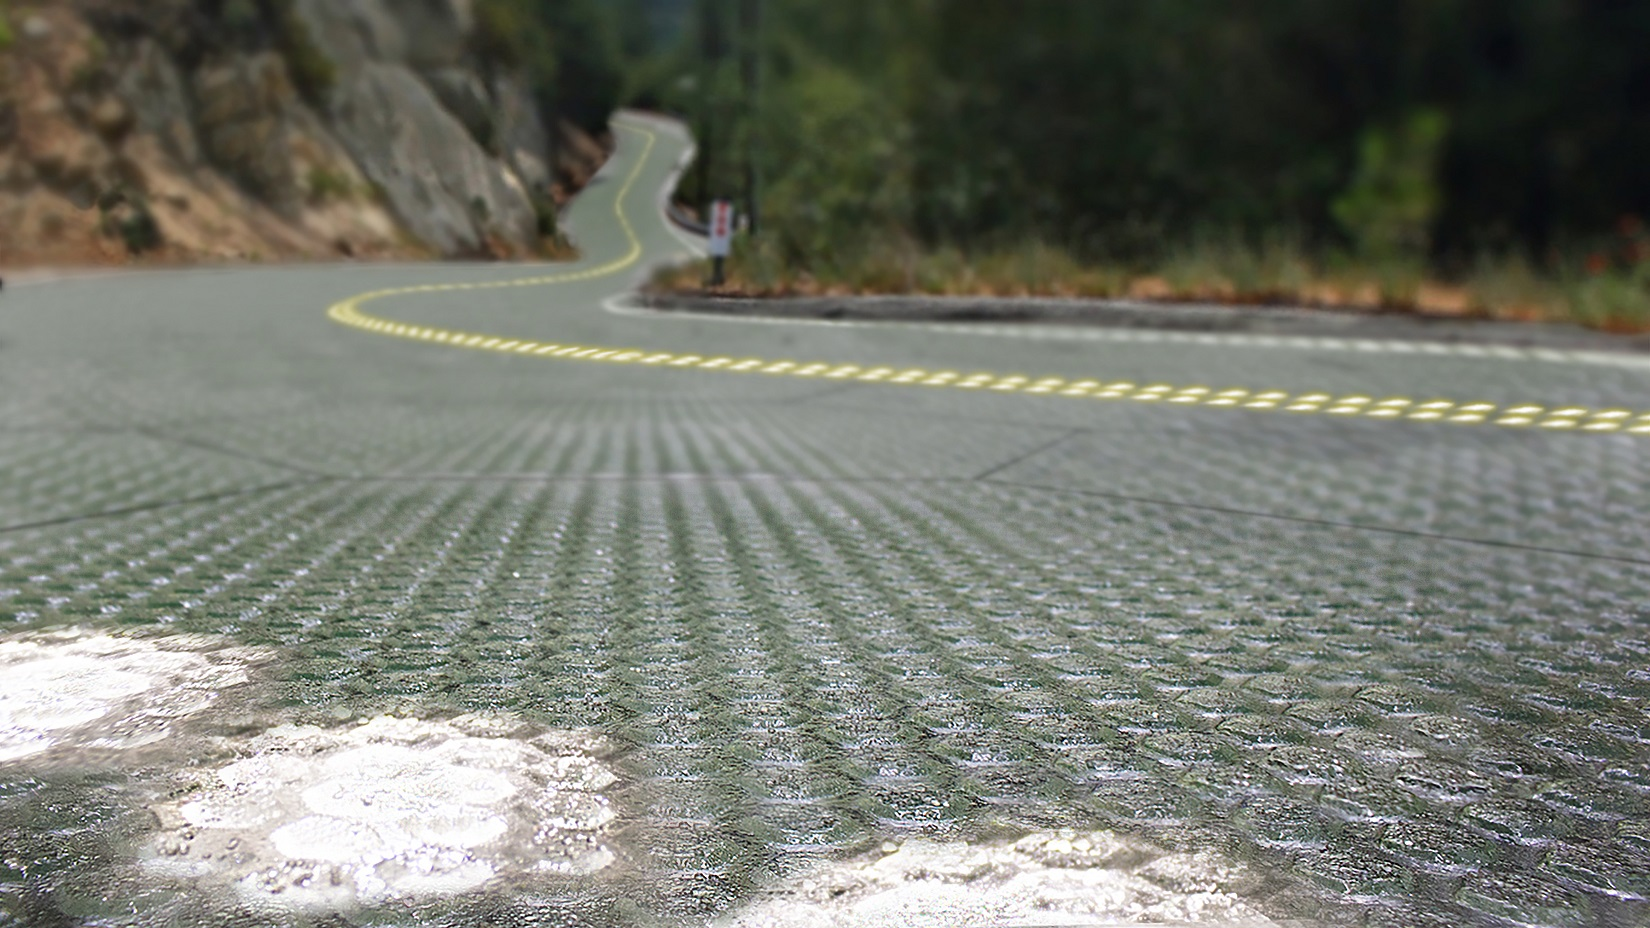 Image courtesy of  Solar Roadways